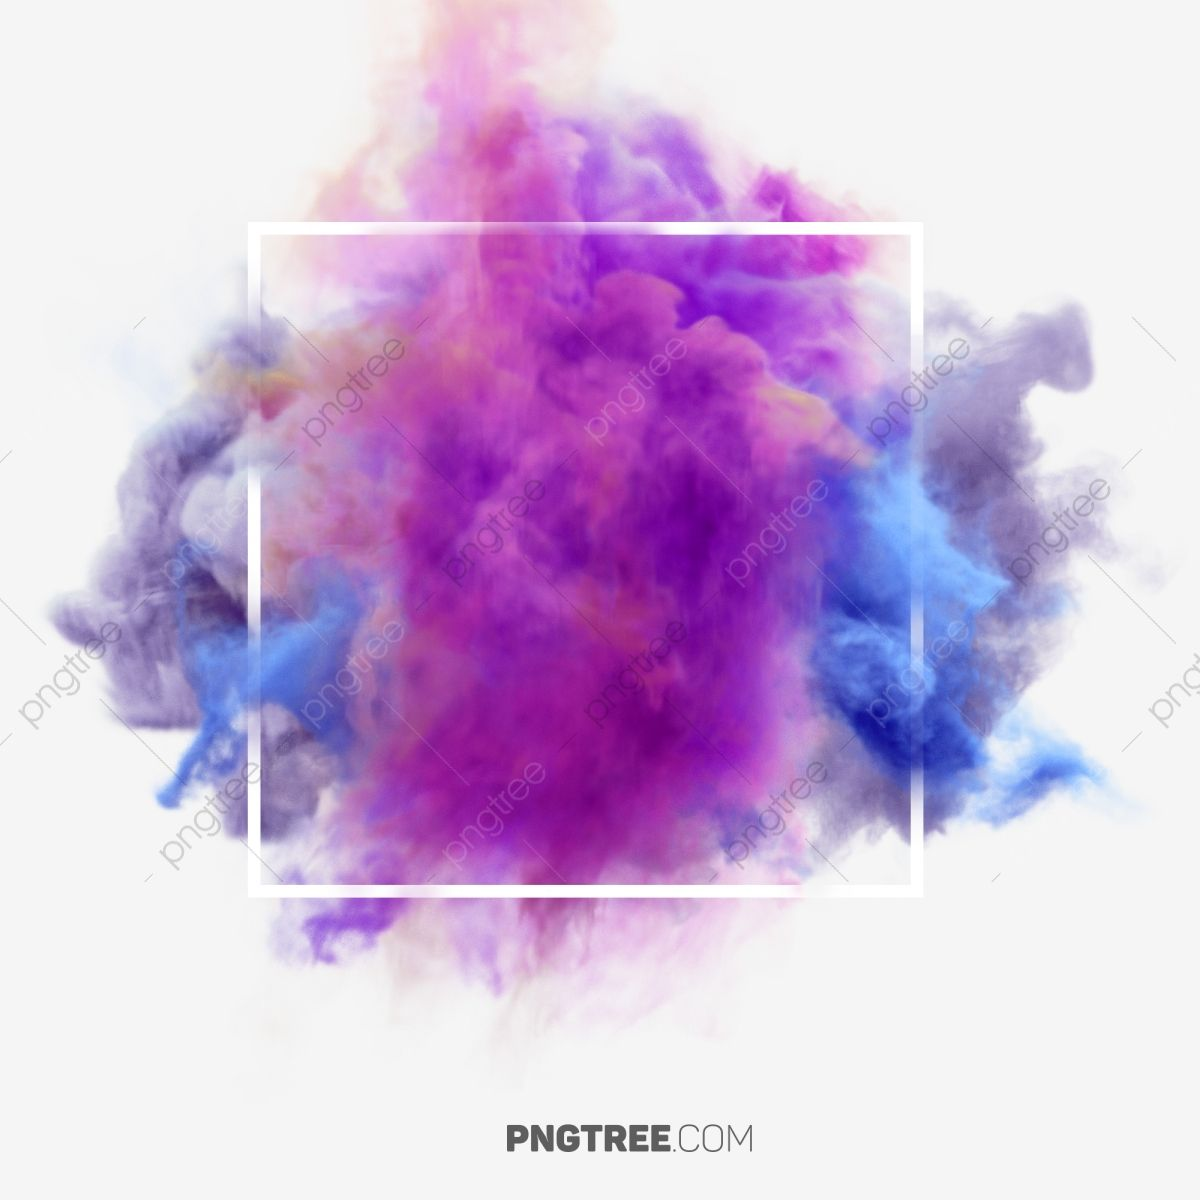 Colorful Smoke Creative Border Color Smoke Creativity Png Transparent Clipart Image And Psd File For Free Download Colored Smoke Poster Background Design Colourful Wallpaper Iphone